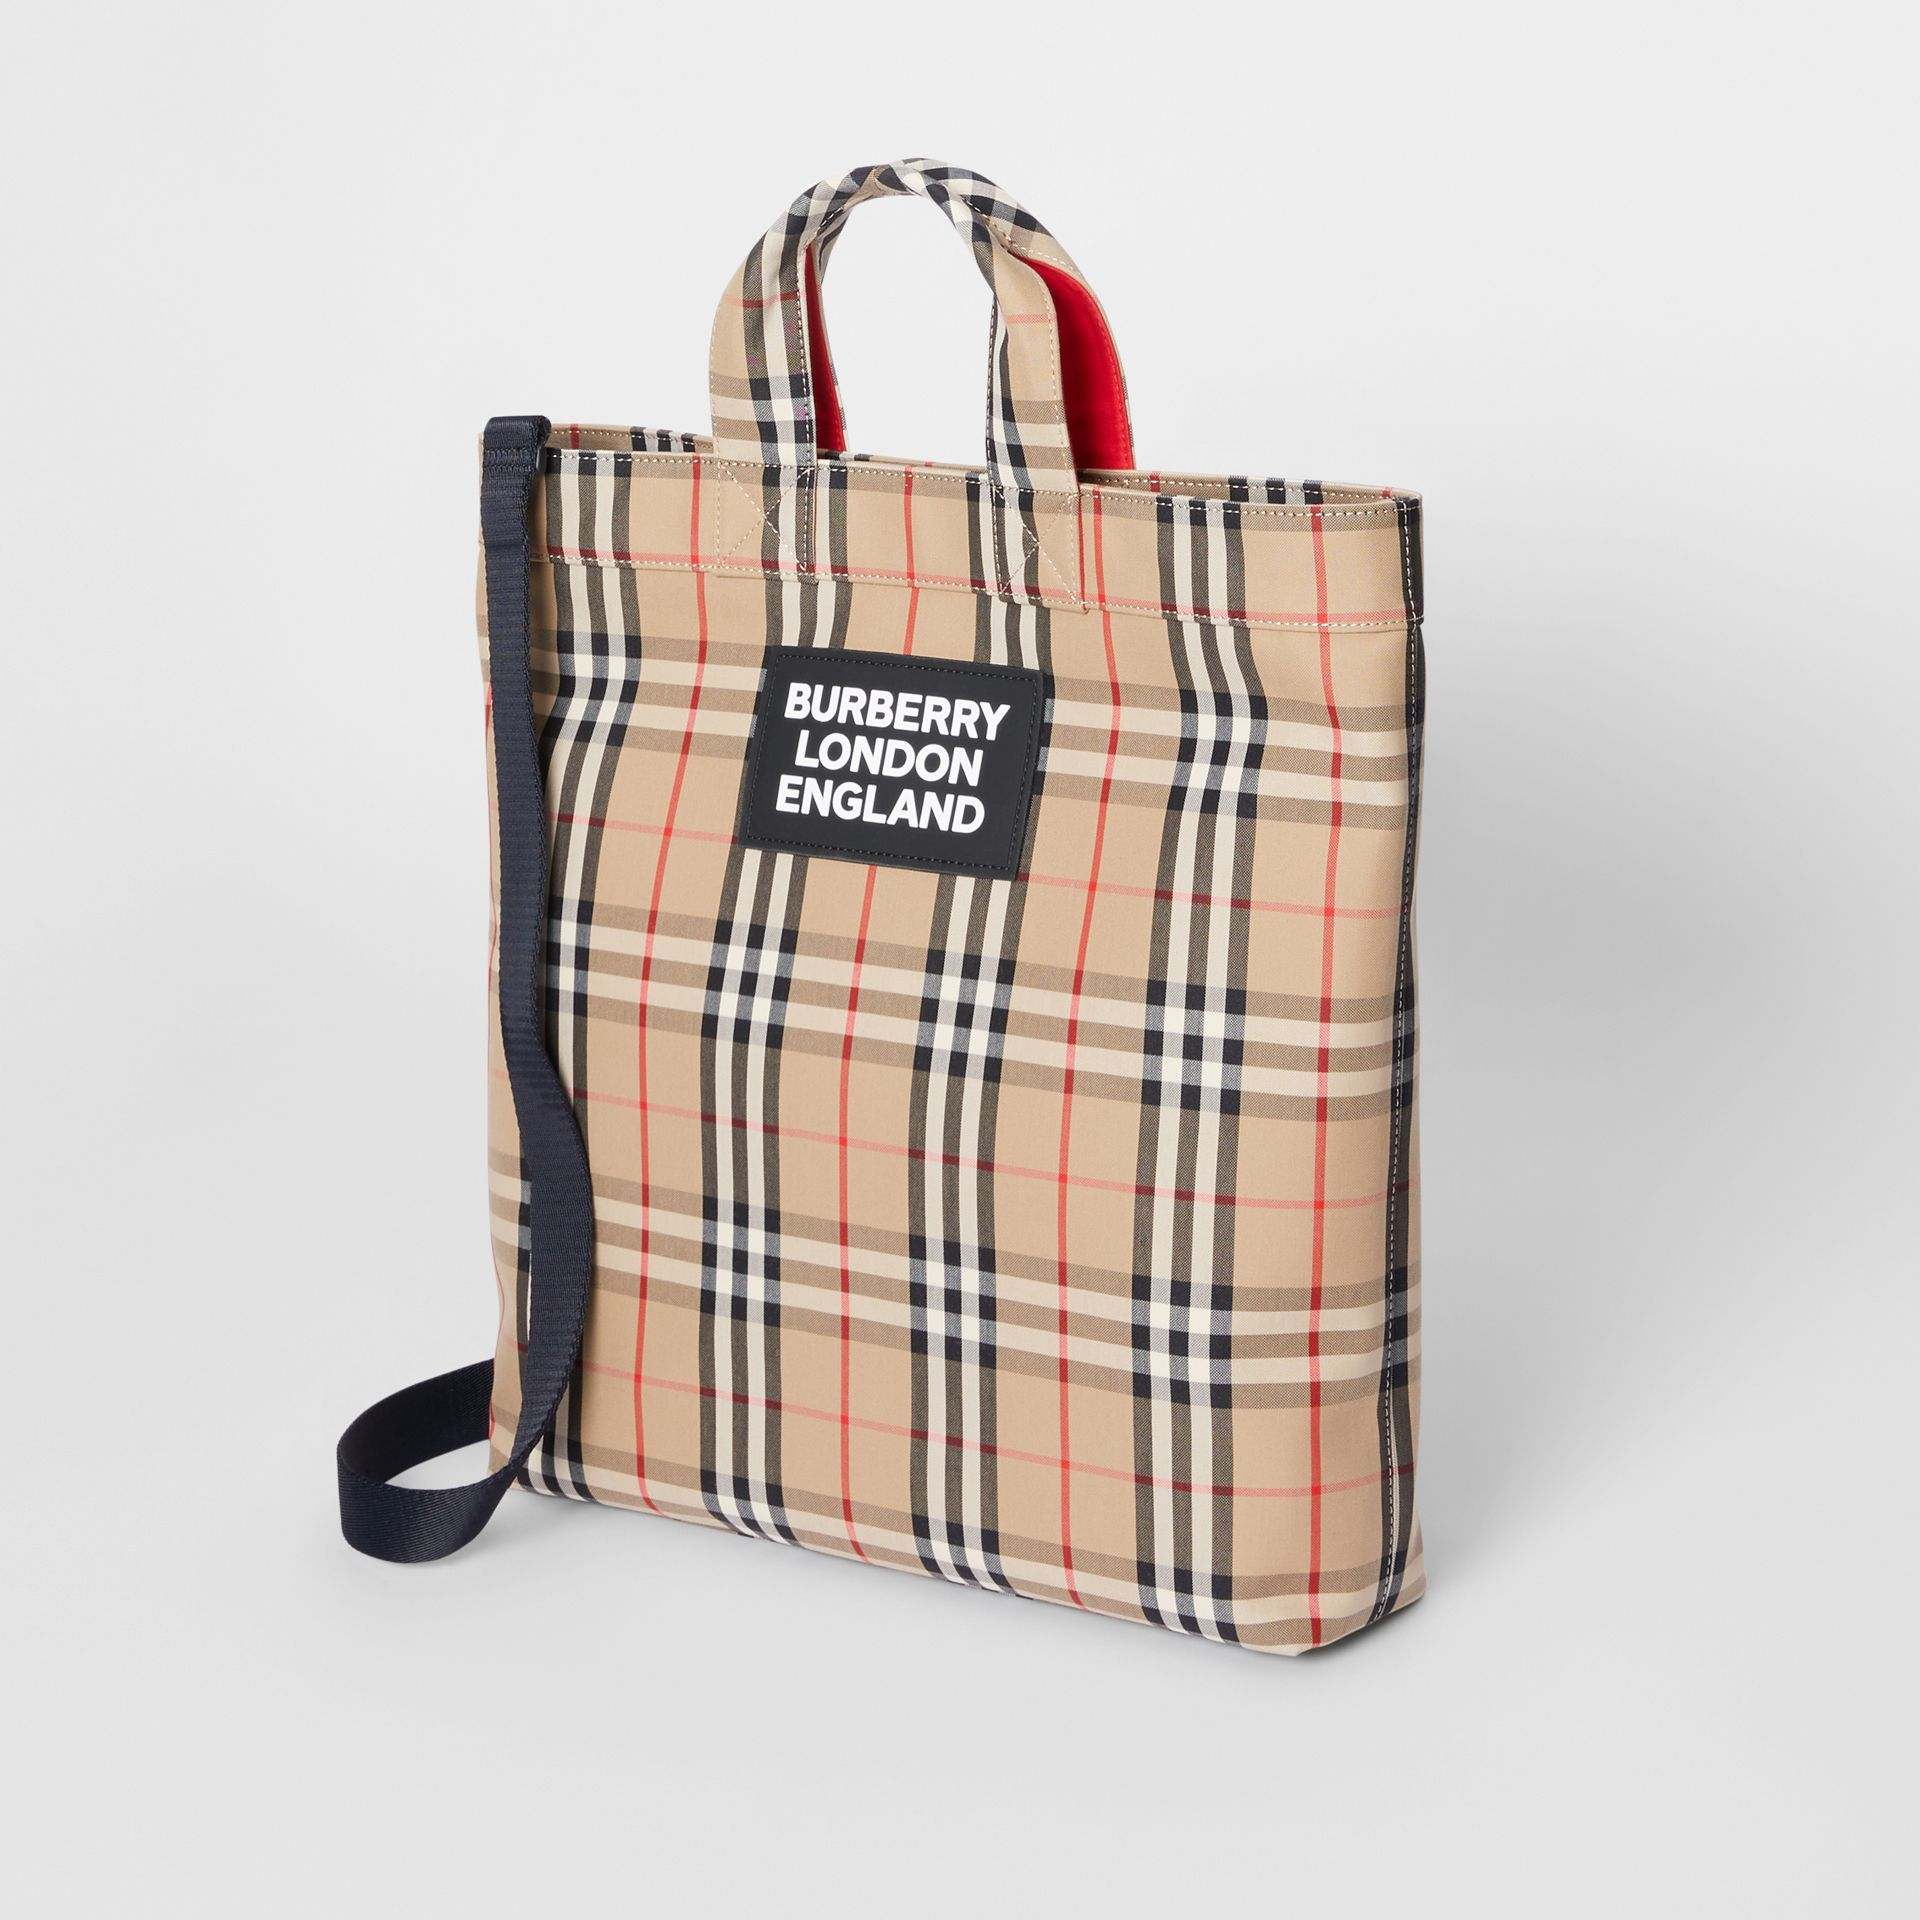 Logo Appliqué Vintage Check Cotton Blend Tote in Archive Beige - Men | Burberry - gallery image 2